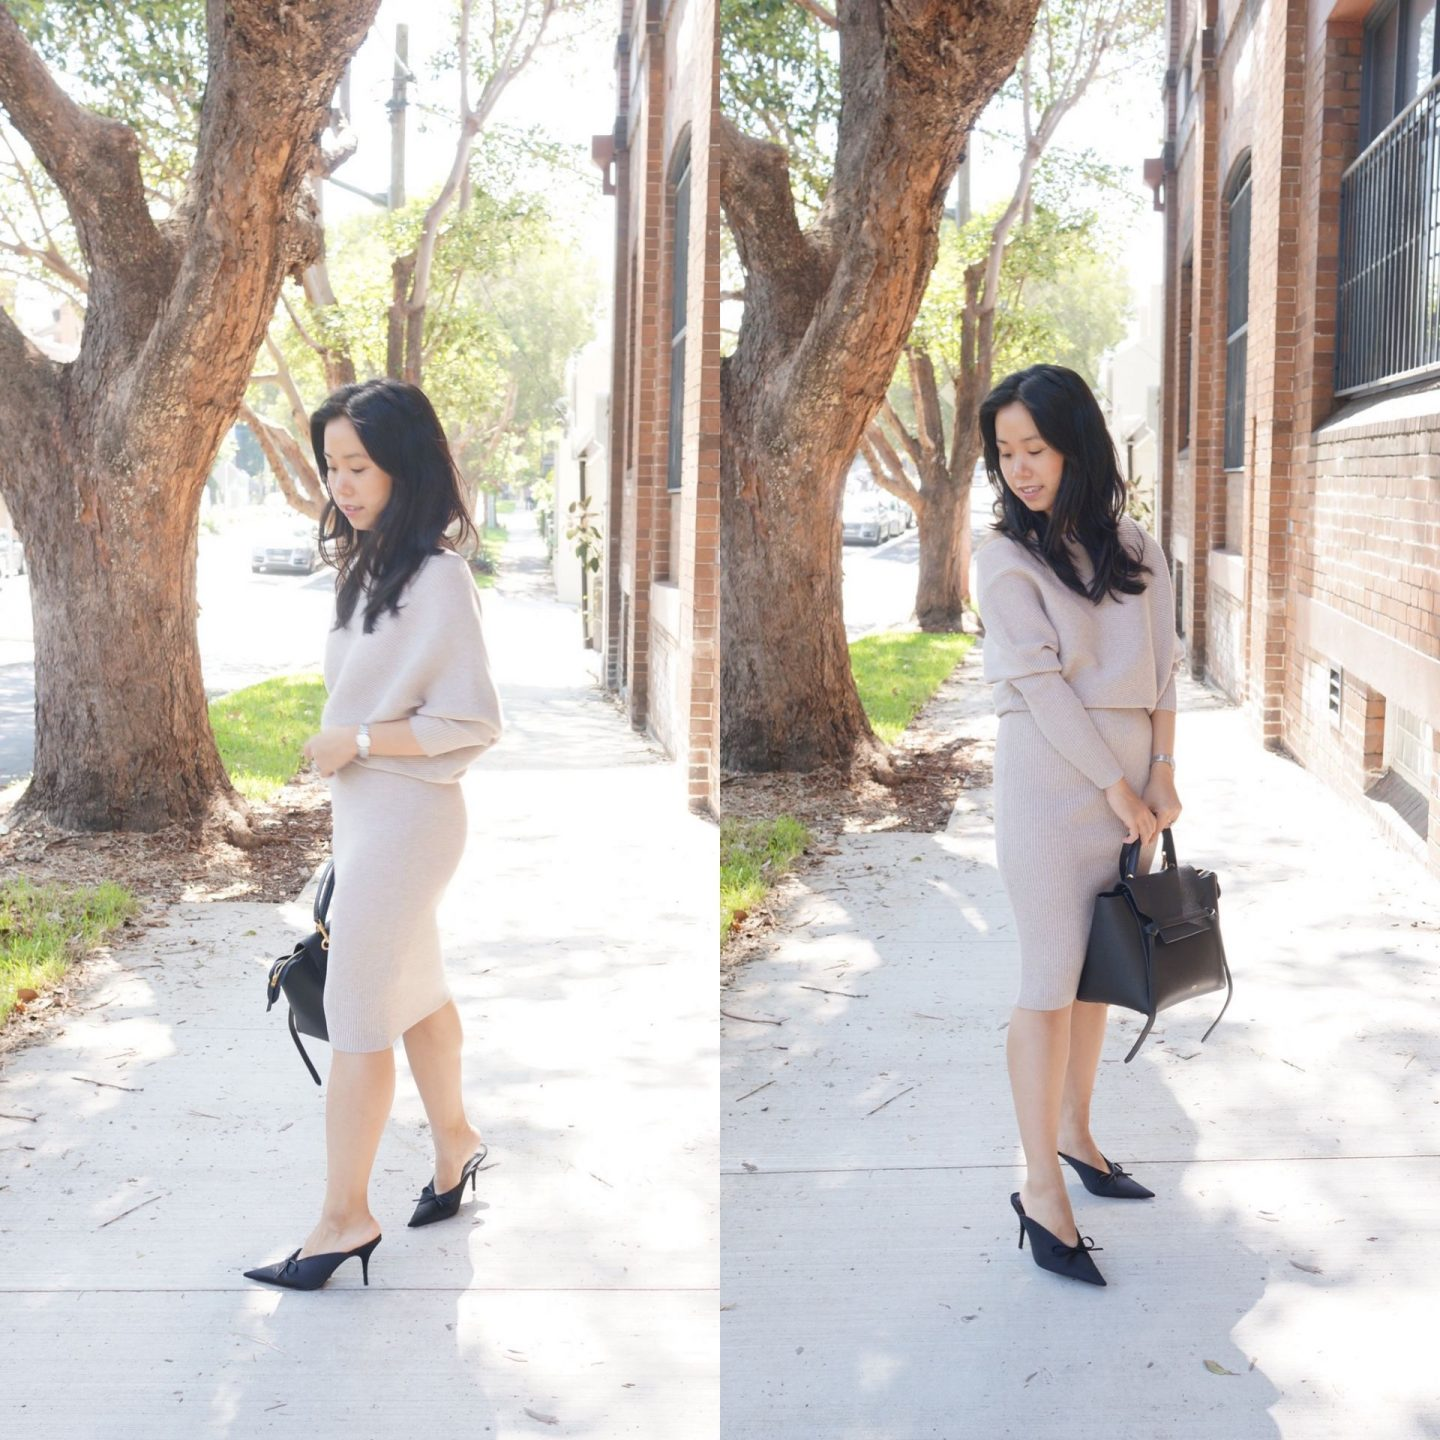 reiss lara dress in off shoulder knit dress style review in stone styled for work with gucci belt and celine belt bag